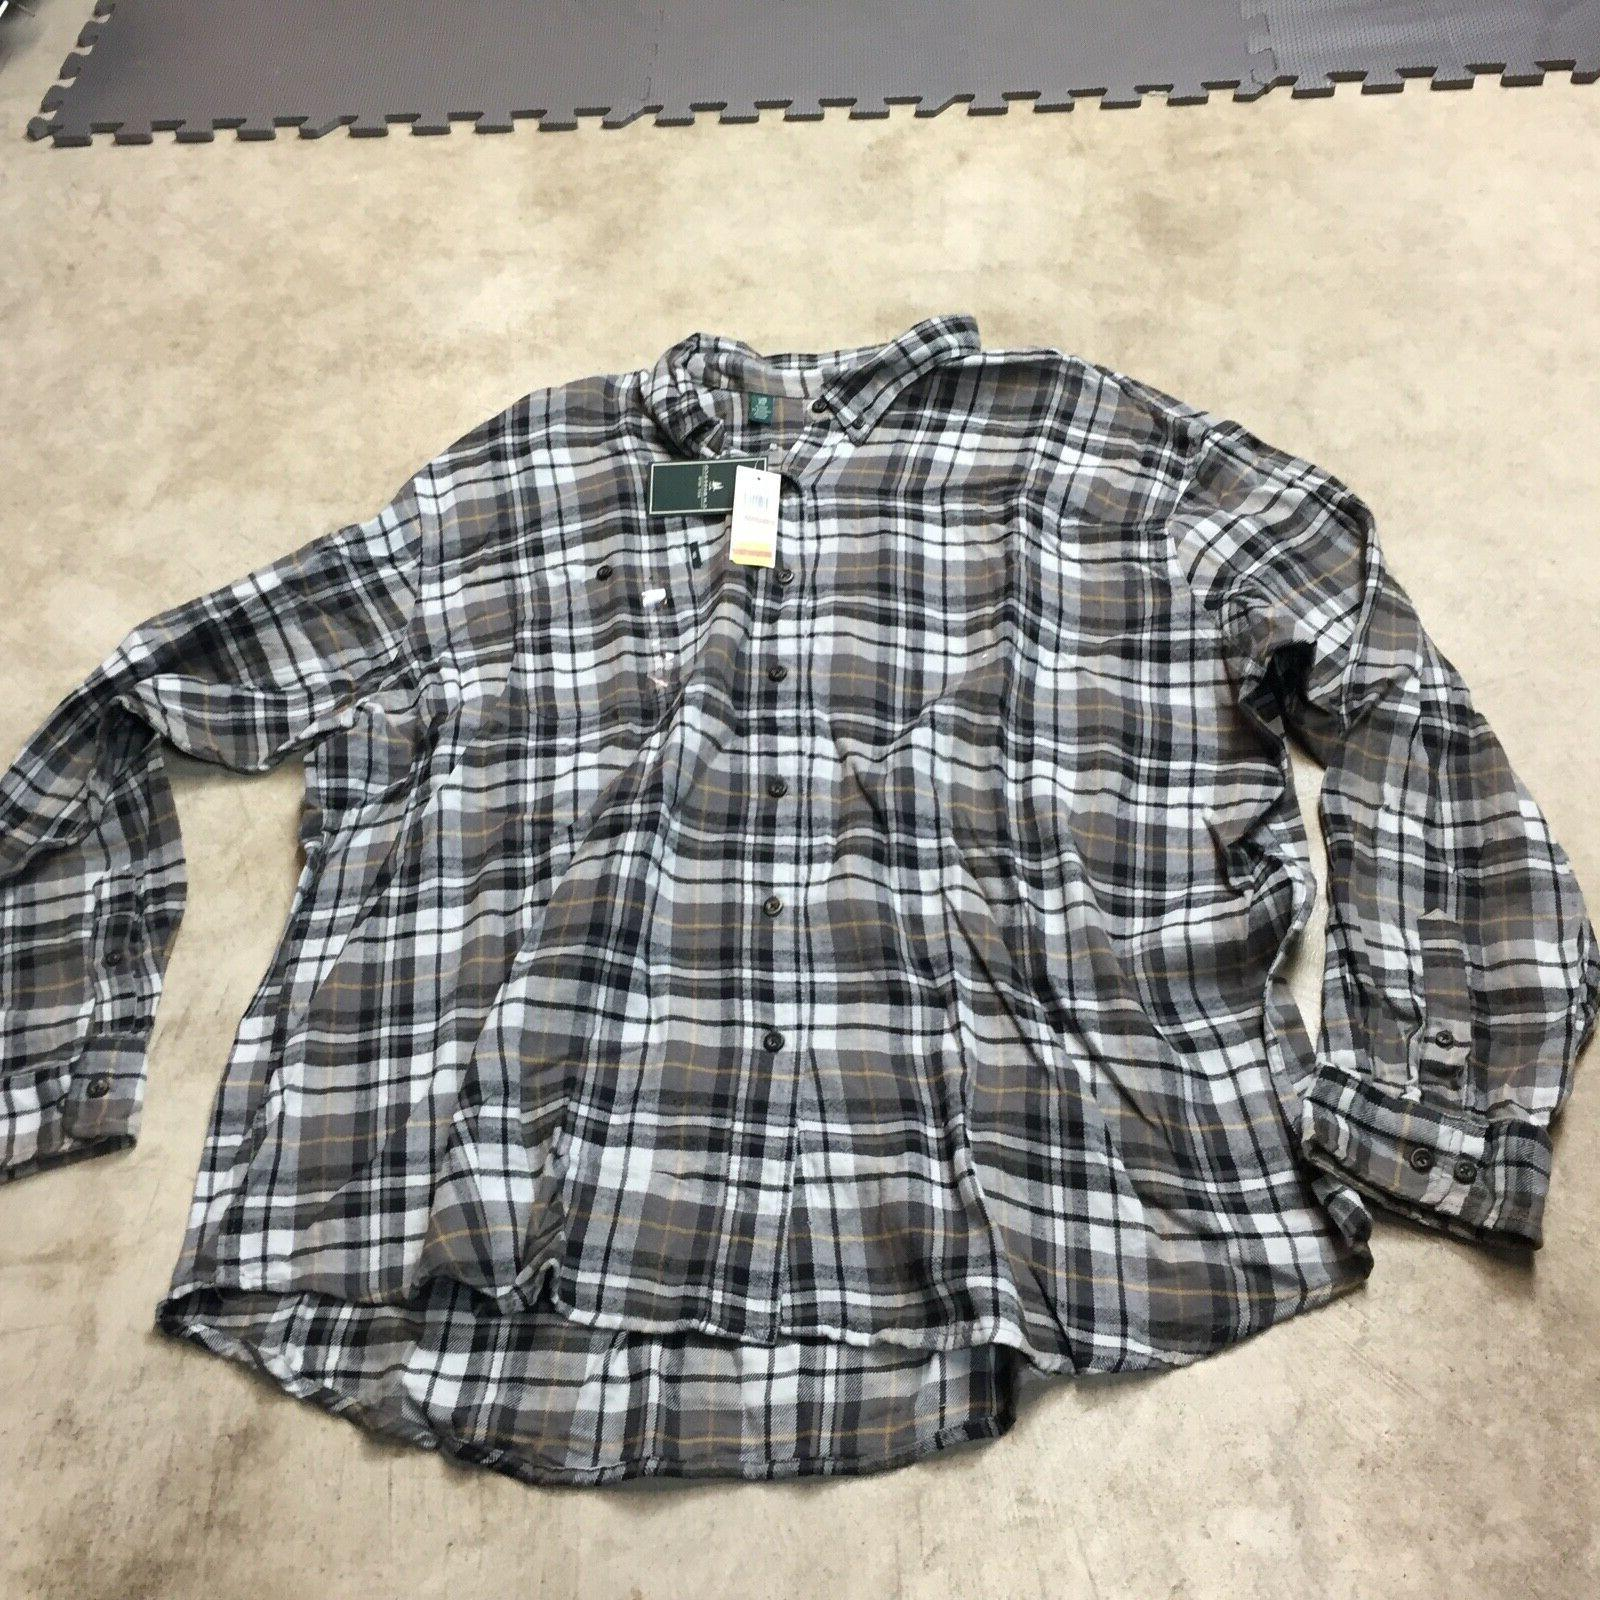 NEW of 3 mens button up shirts fireside flannel 3XL